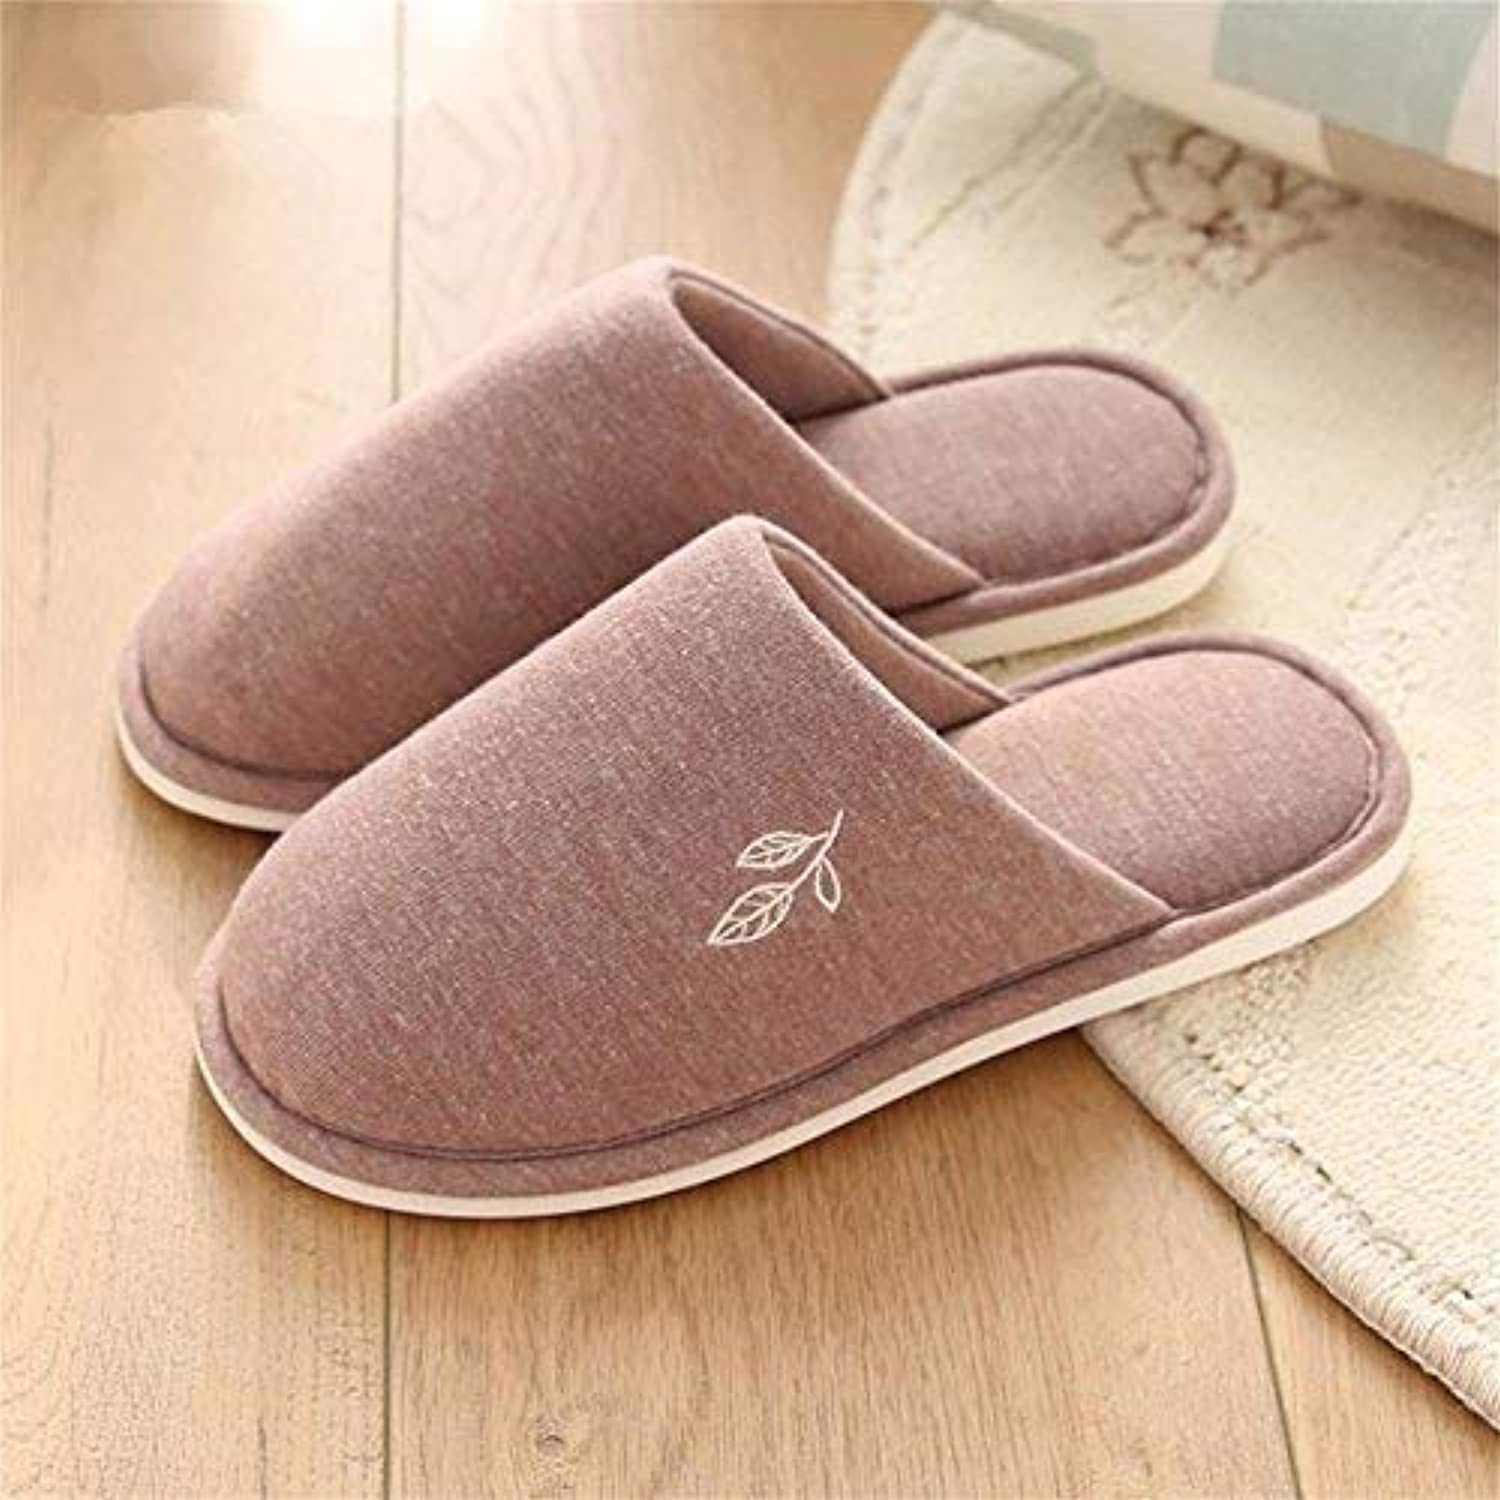 JaHGDU Ms. Home Slippers Indoor Thermal Non-Slip Cute Leaves Pattern Solid color Winter and Autumn Keep Warm Classic Basic Cotton Slippers